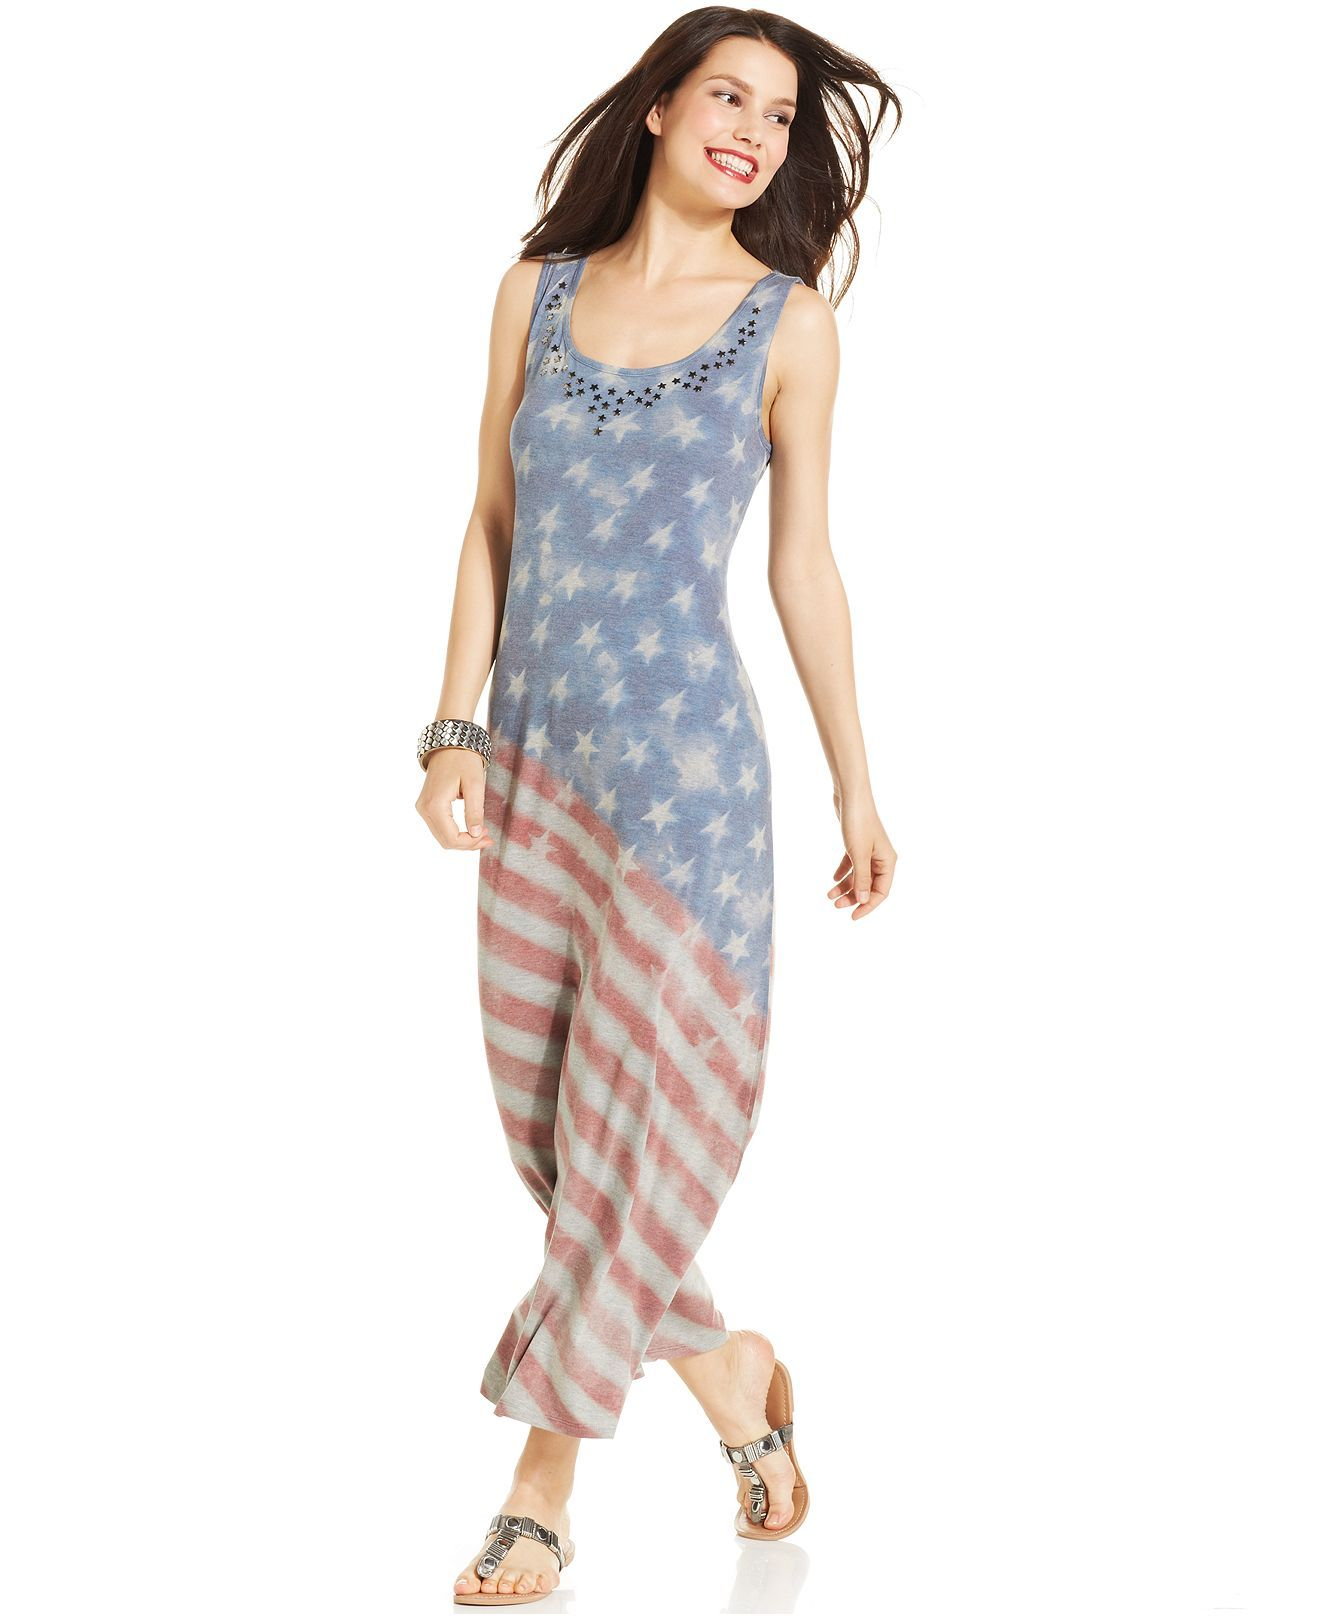 684009490 Style co. Studded Flag-Print Maxi Dress - Dresses - Women - Macy s ...